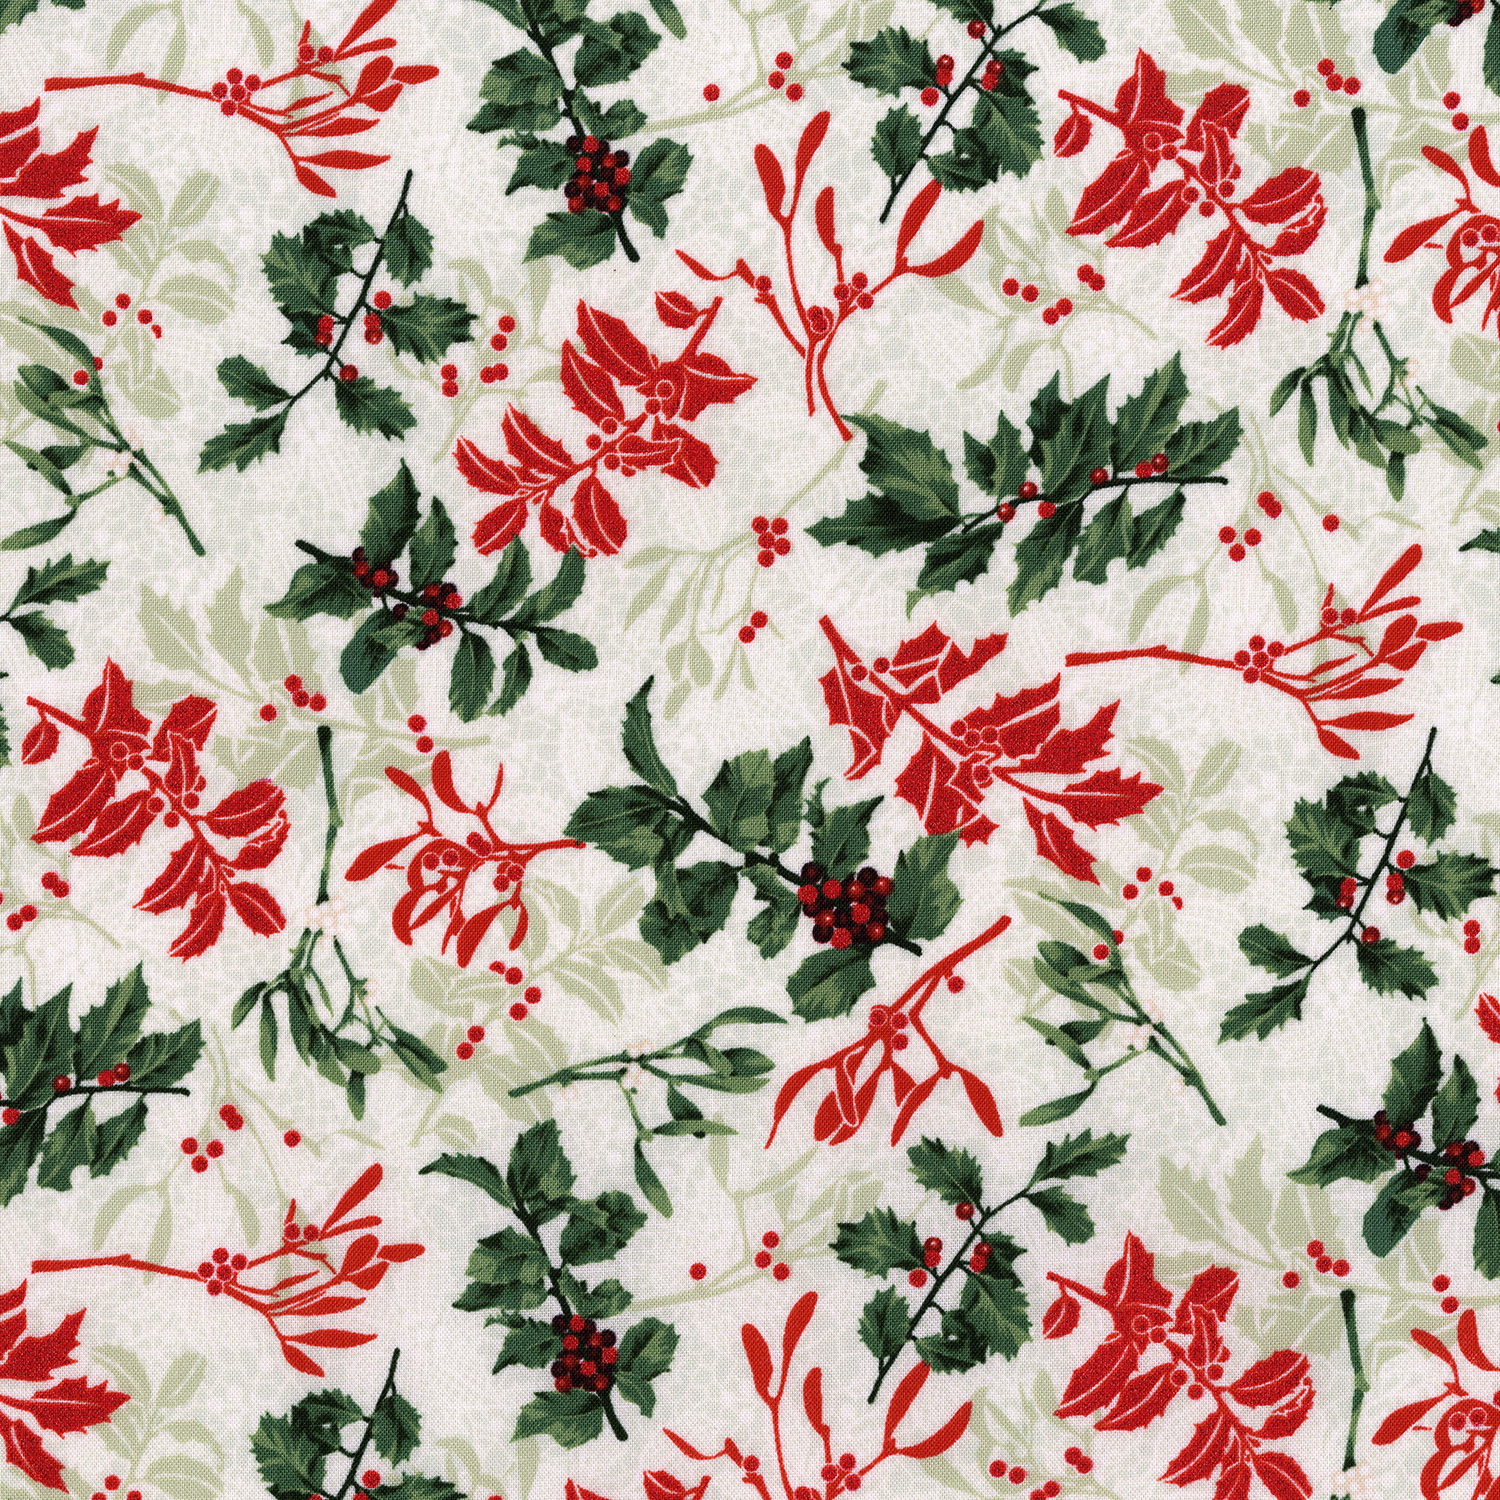 3489-001 HOLLY BERRY-RADIANT SILVER SAGE